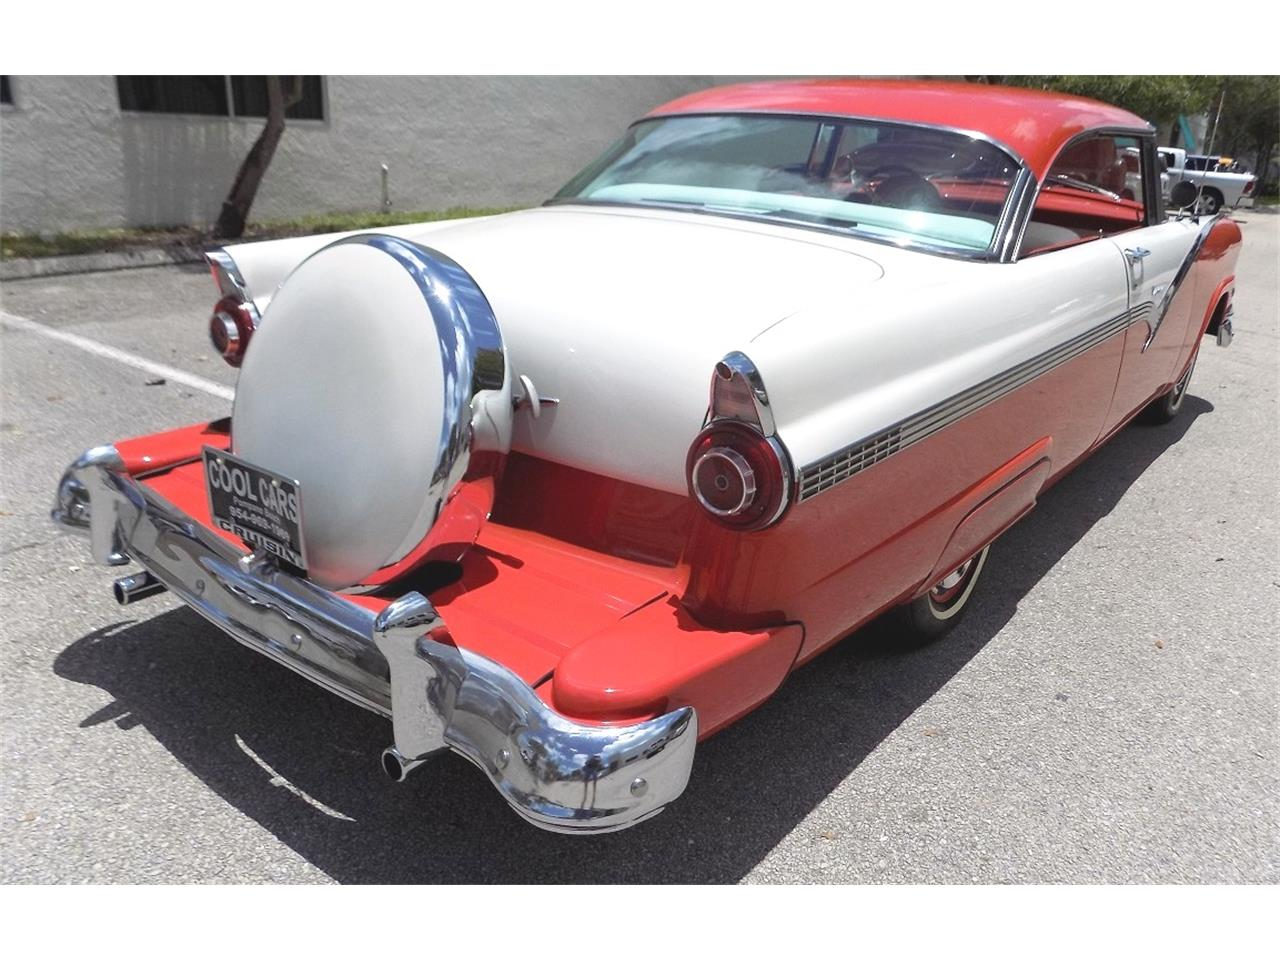 Large Picture of Classic 1956 Ford Victoria located in POMPANO BEACH Florida - LHFB